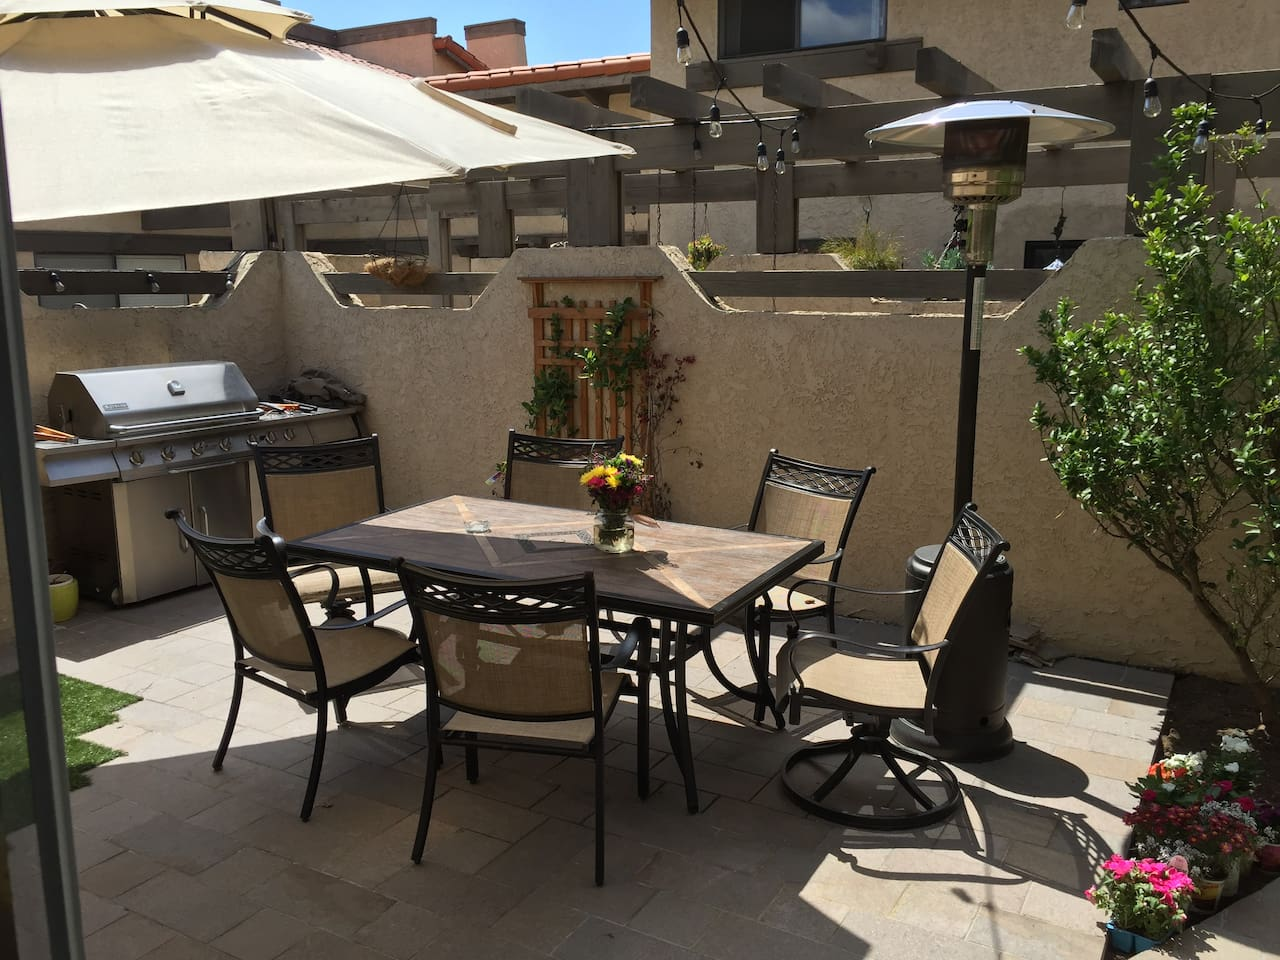 Beautiful private outdoor patio with large dining table for 6 guests, barbecue, heat lamp, garden, fountain, couch, and fire pit.